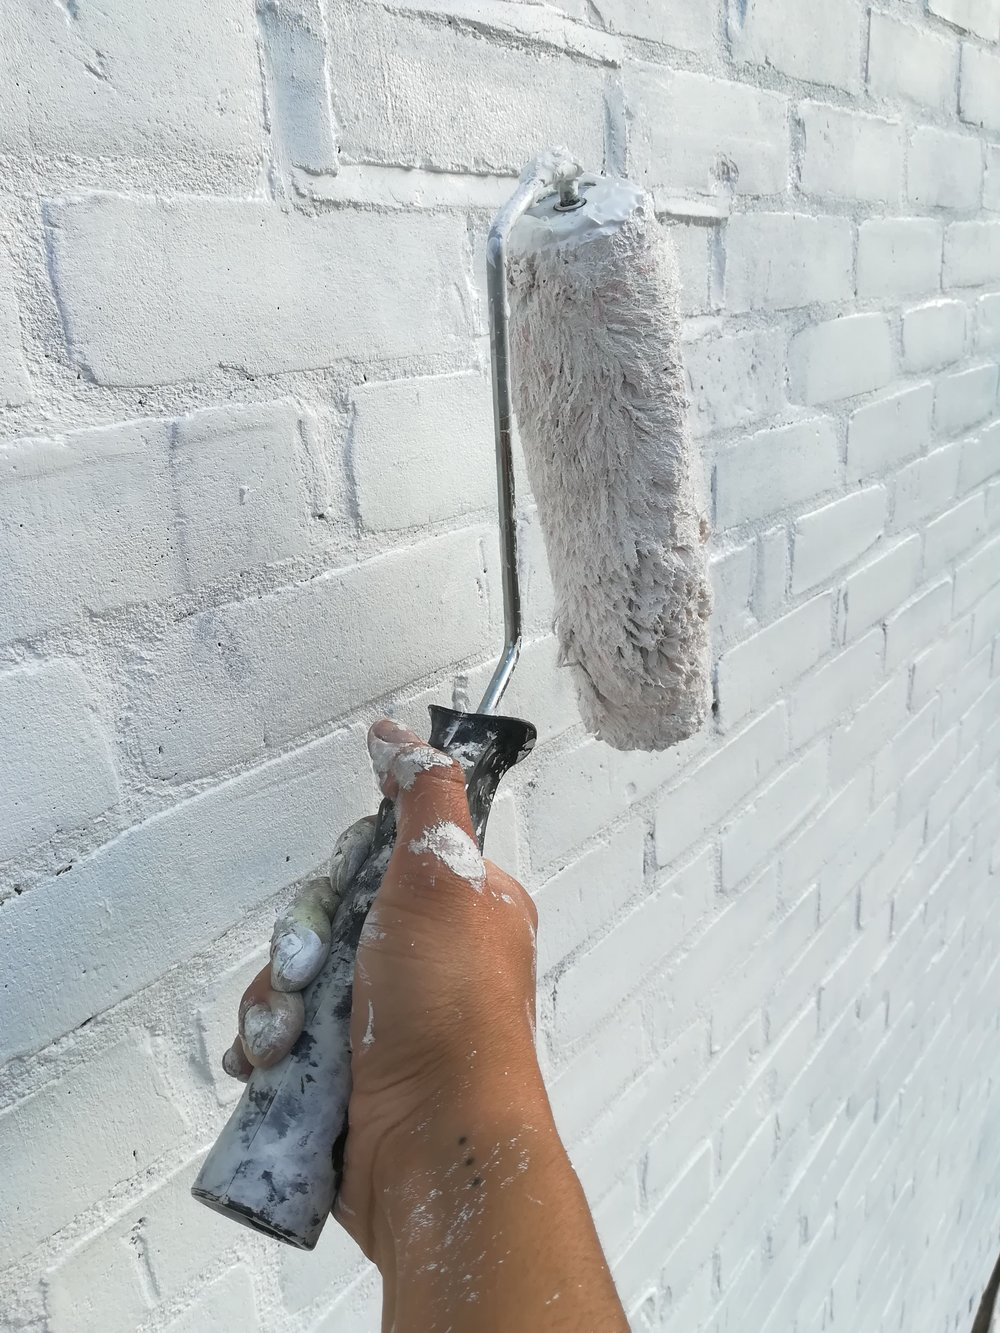 Must-haves - The next day, I applied a brilliant white masonry primer using a roller with a sleeve specifically designed for rough surfaces and a selection of masonry brushes - they make the application so much easier.